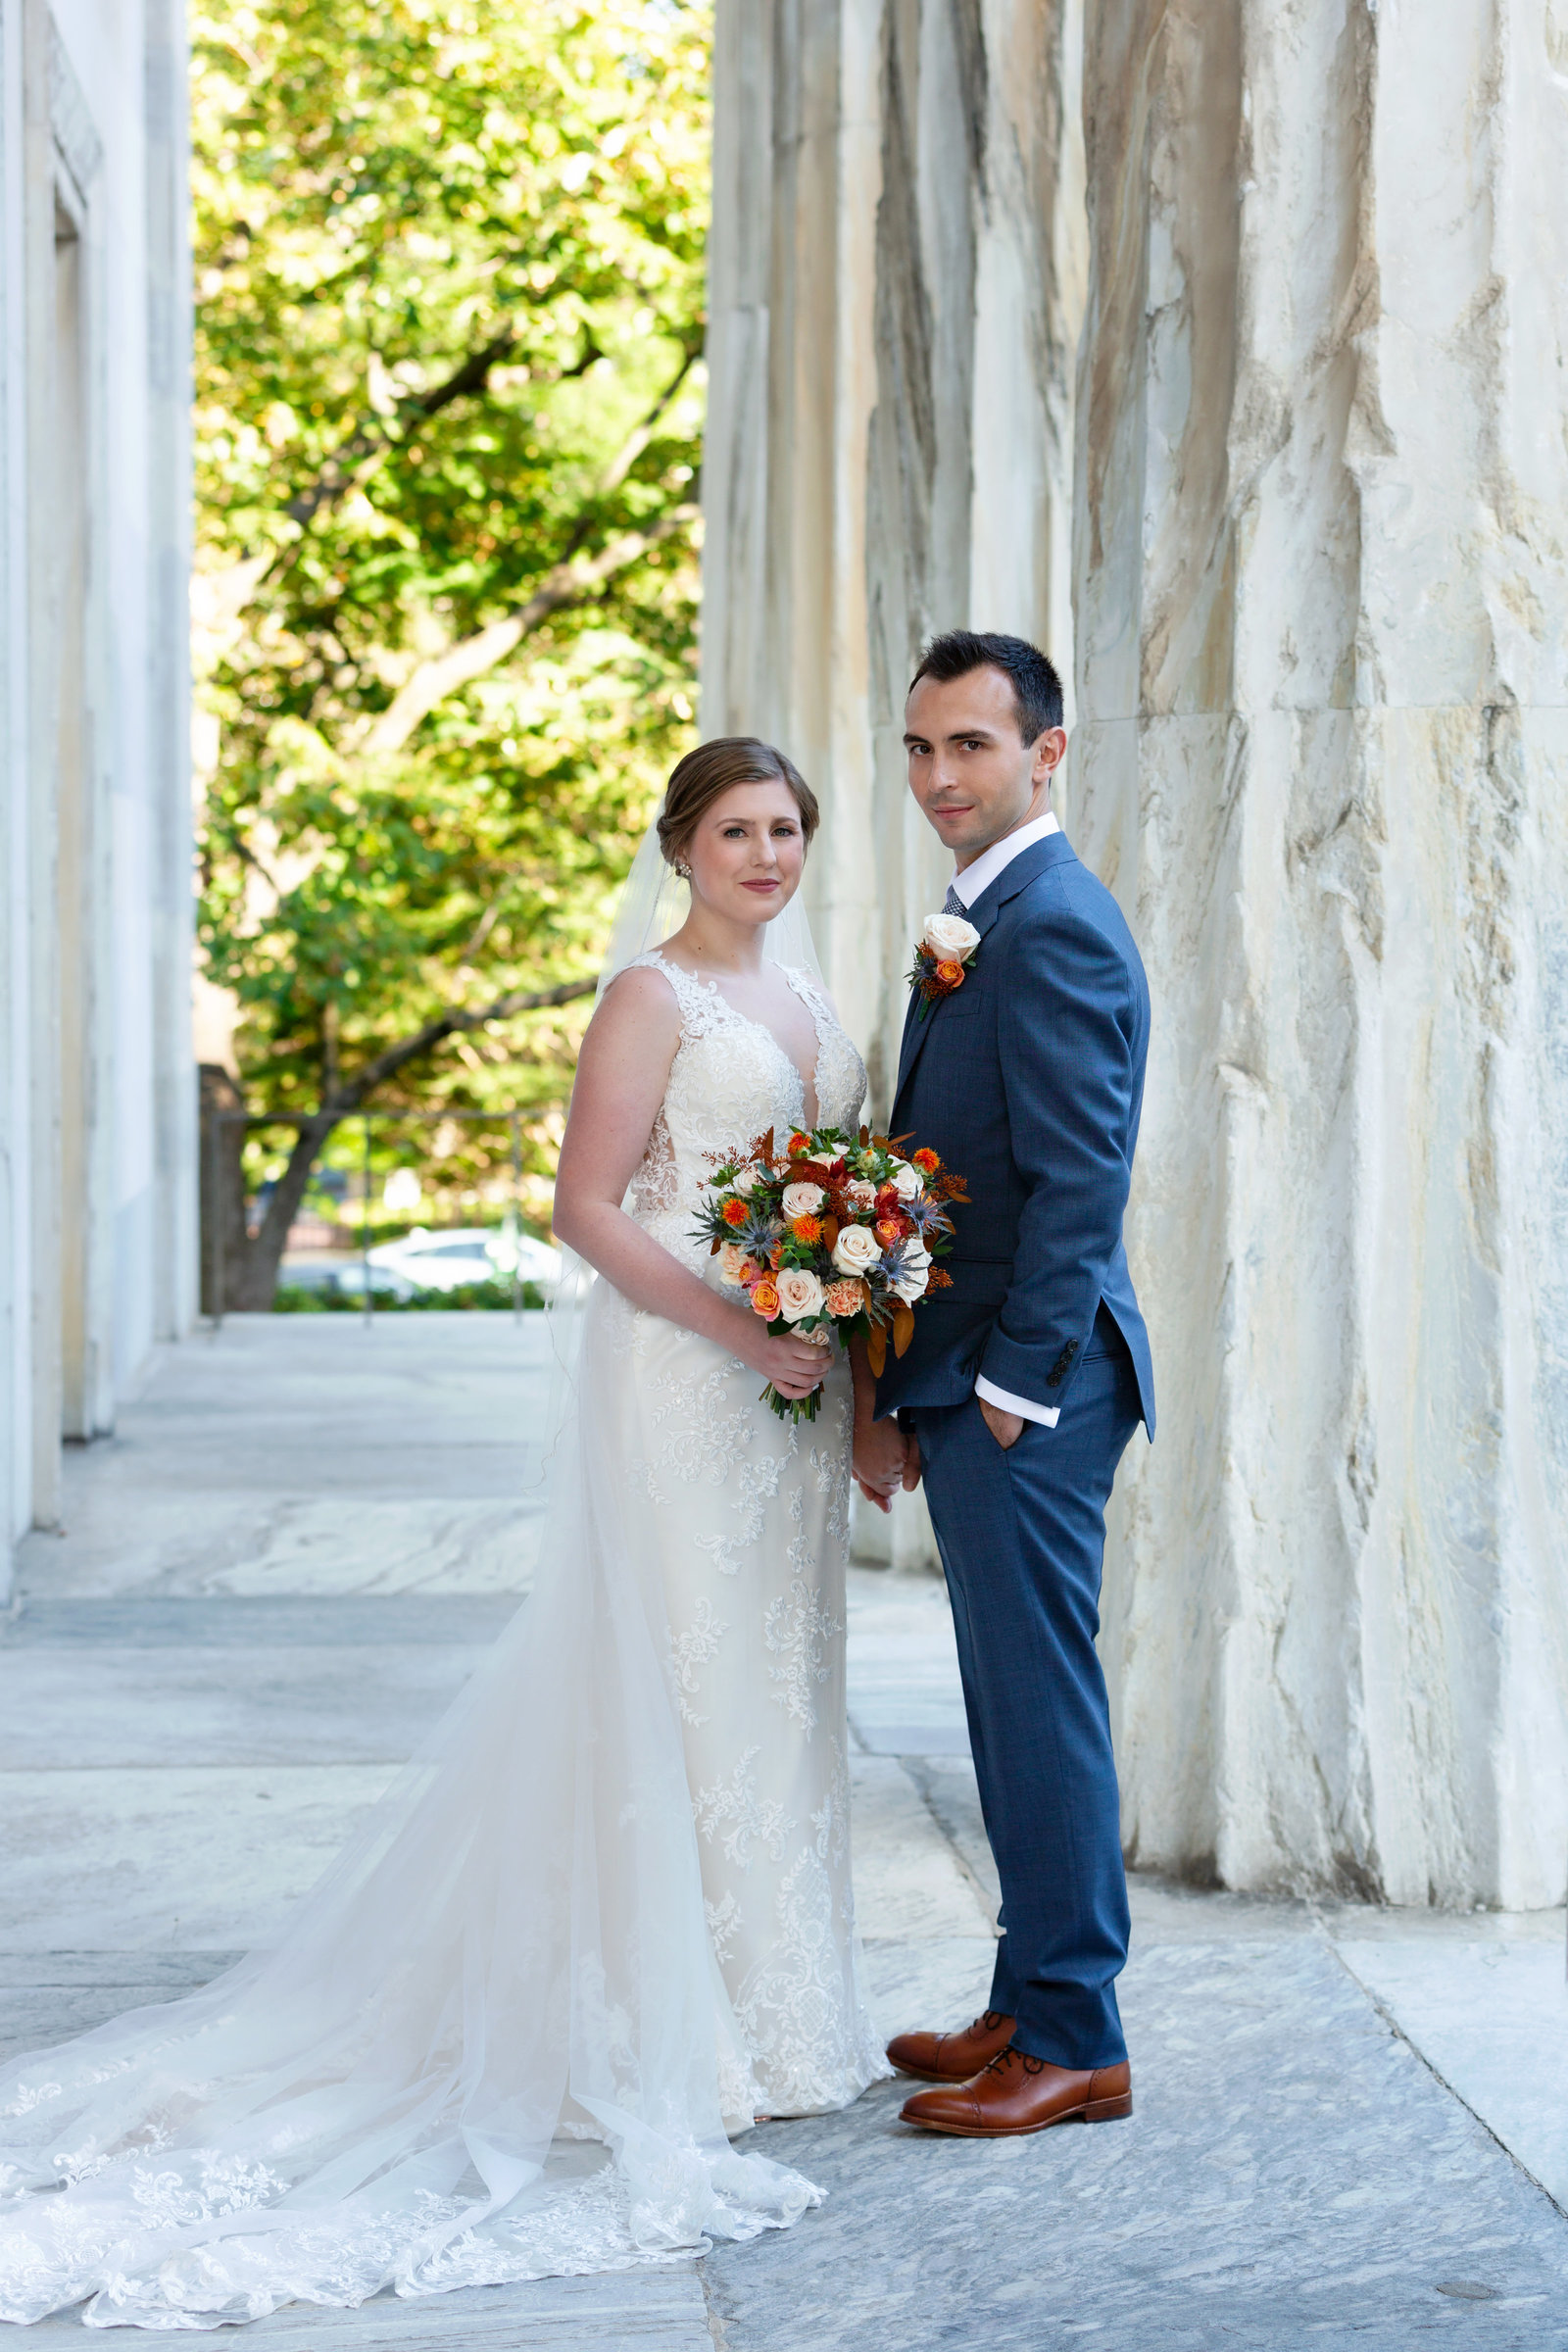 2nd-Bank-of-America-Wedding-Previews-Mariya-Stecklair-Photography-2